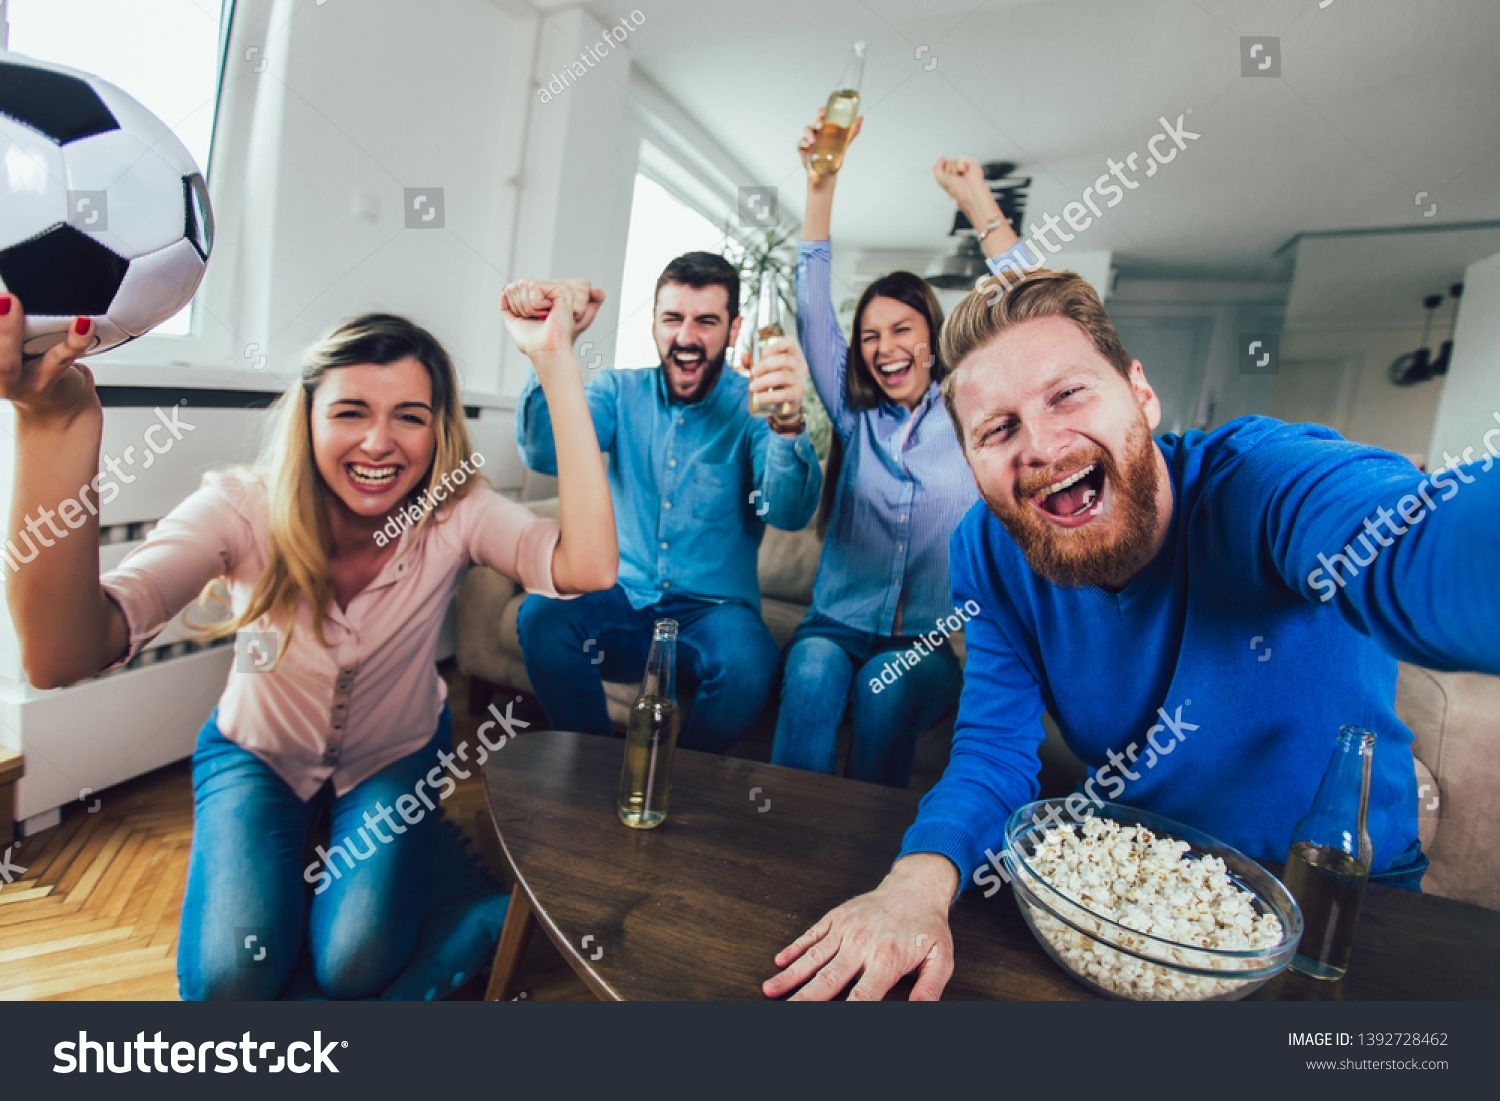 Happy Friends Or Football Fans Watching Soccer On Tv And Celebrating Victory At Home Friendship Sports And Entertainment Concept Ad Sponsored Watching S